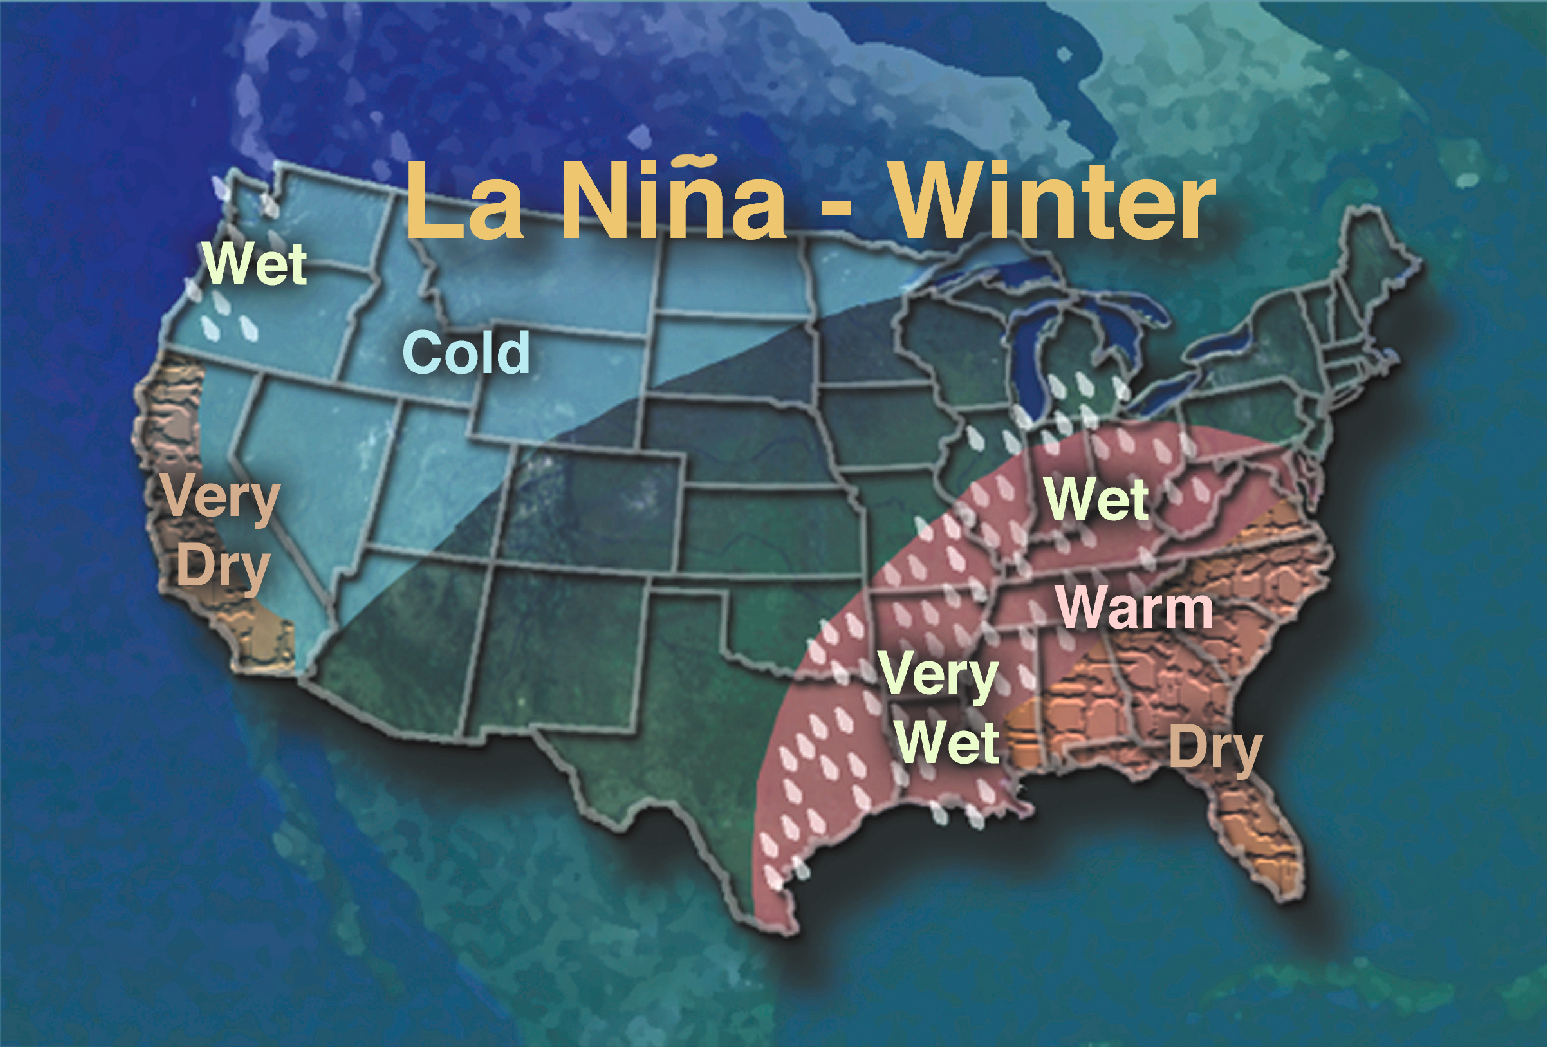 NASA NASA Observes La Niña This Little Girl Makes A Big - Map of weather patterns in the us